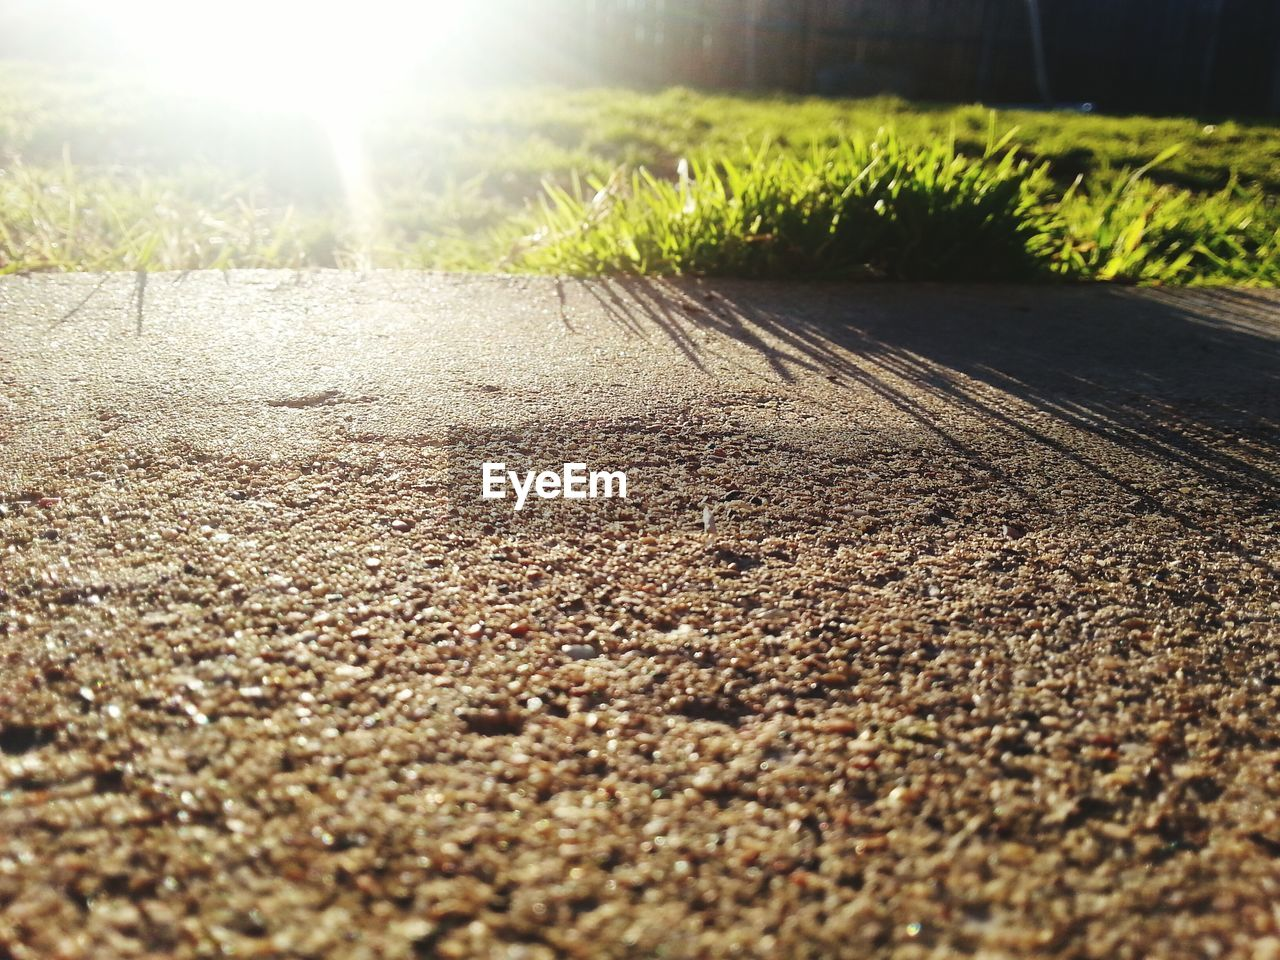 surface level, nature, sunlight, no people, the way forward, day, outdoors, selective focus, tranquility, growth, close-up, grass, beauty in nature